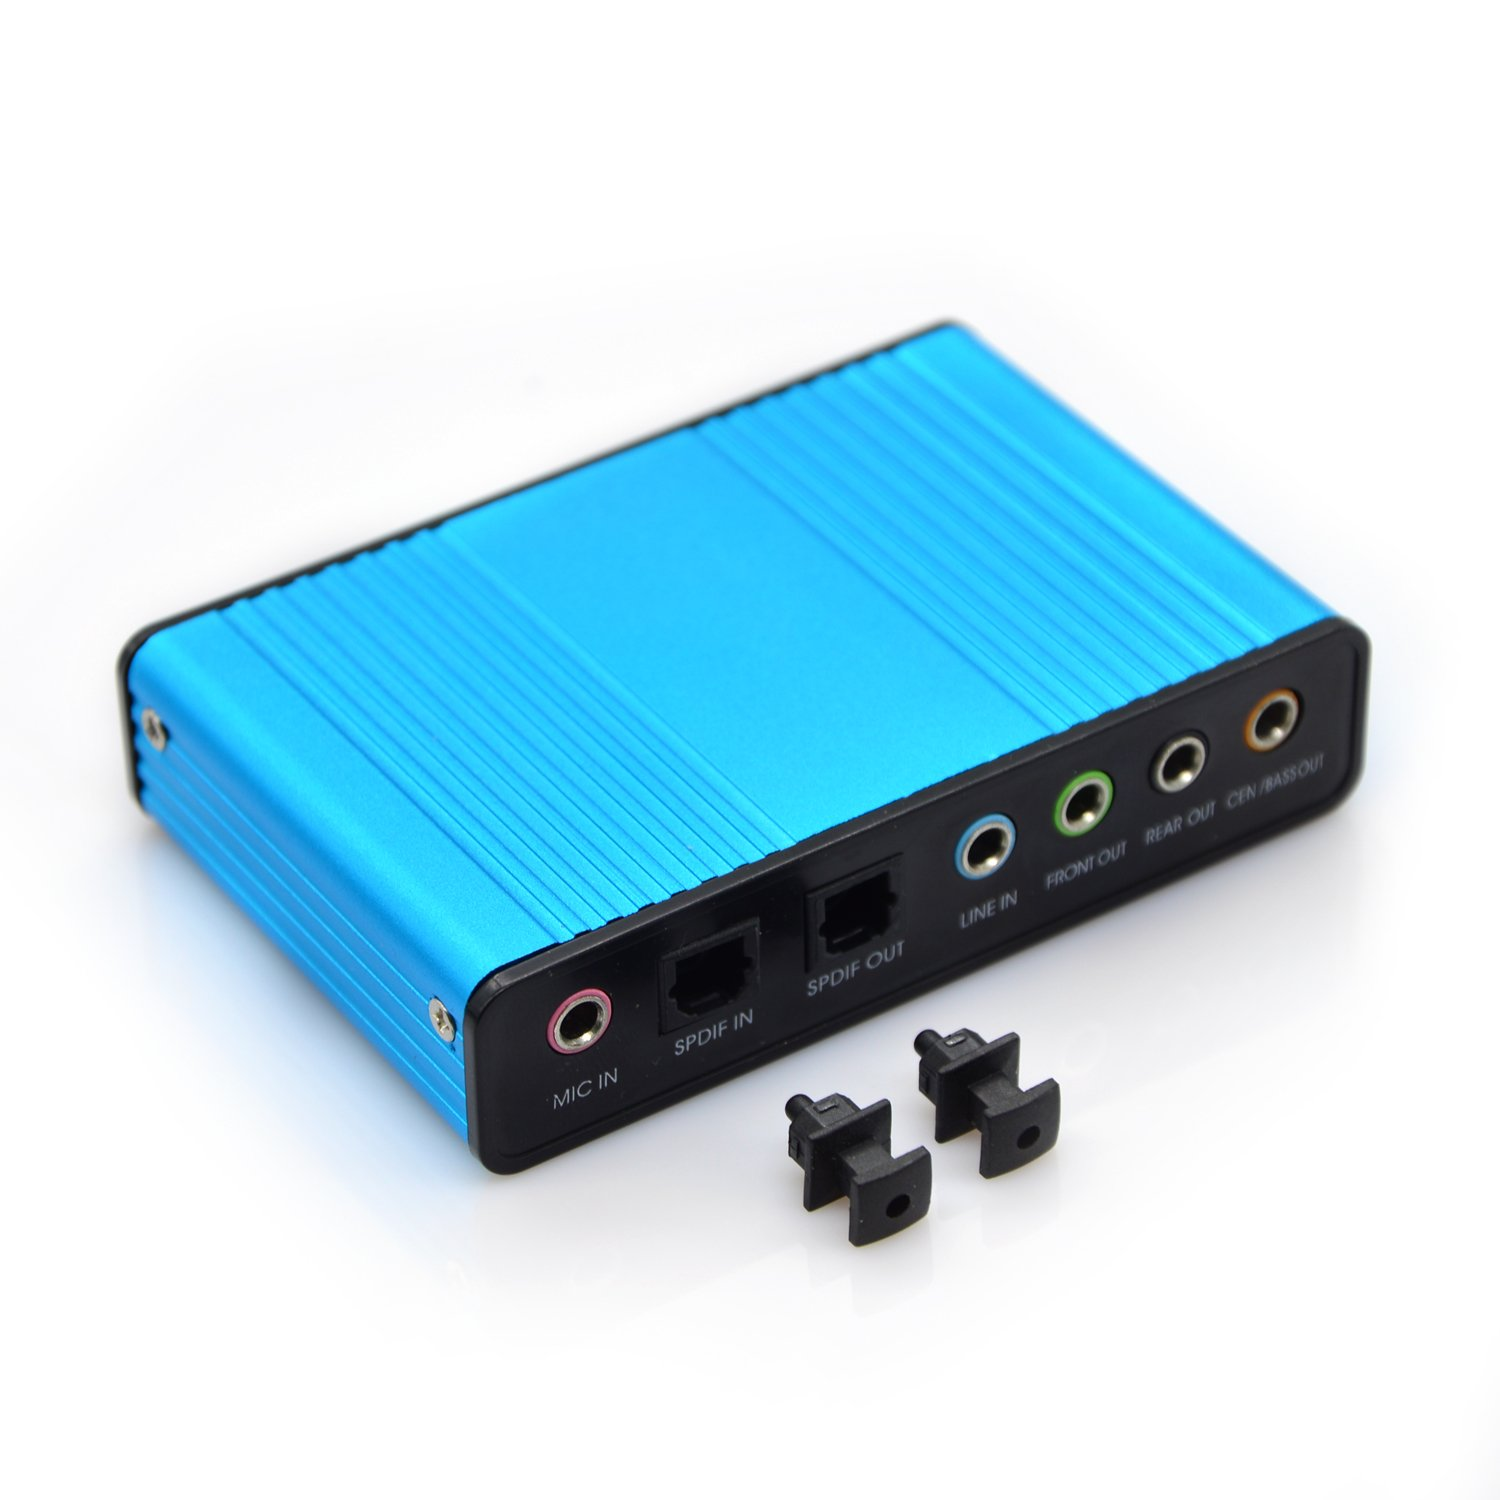 VAlinks Sound Card, 6 Channel External Sound Card USB 2.0 External 5.1 Surround Sound Optical S/PDIF Audio Sound Card Adapter for PC Laptop Recording Compatible with Windows 10/8 / 7/ XP,Blue